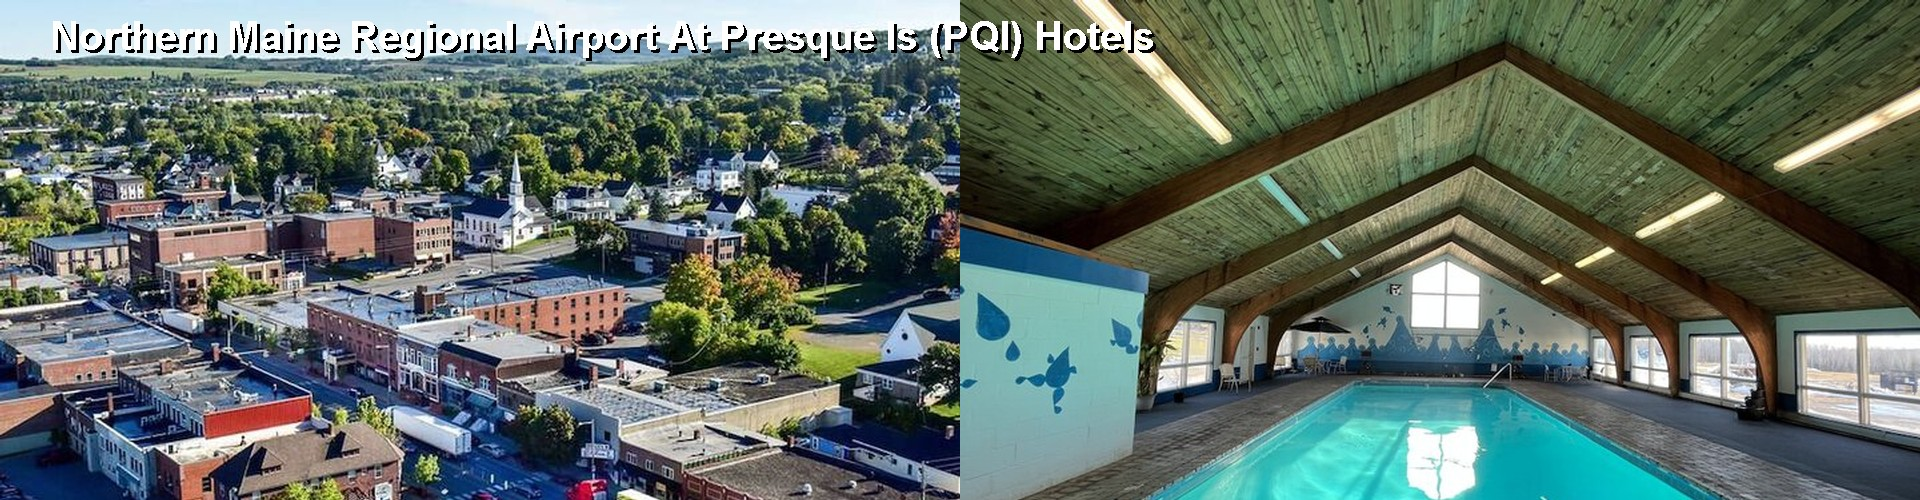 3 Best Hotels near Northern Maine Regional Airport At Presque Is (PQI)